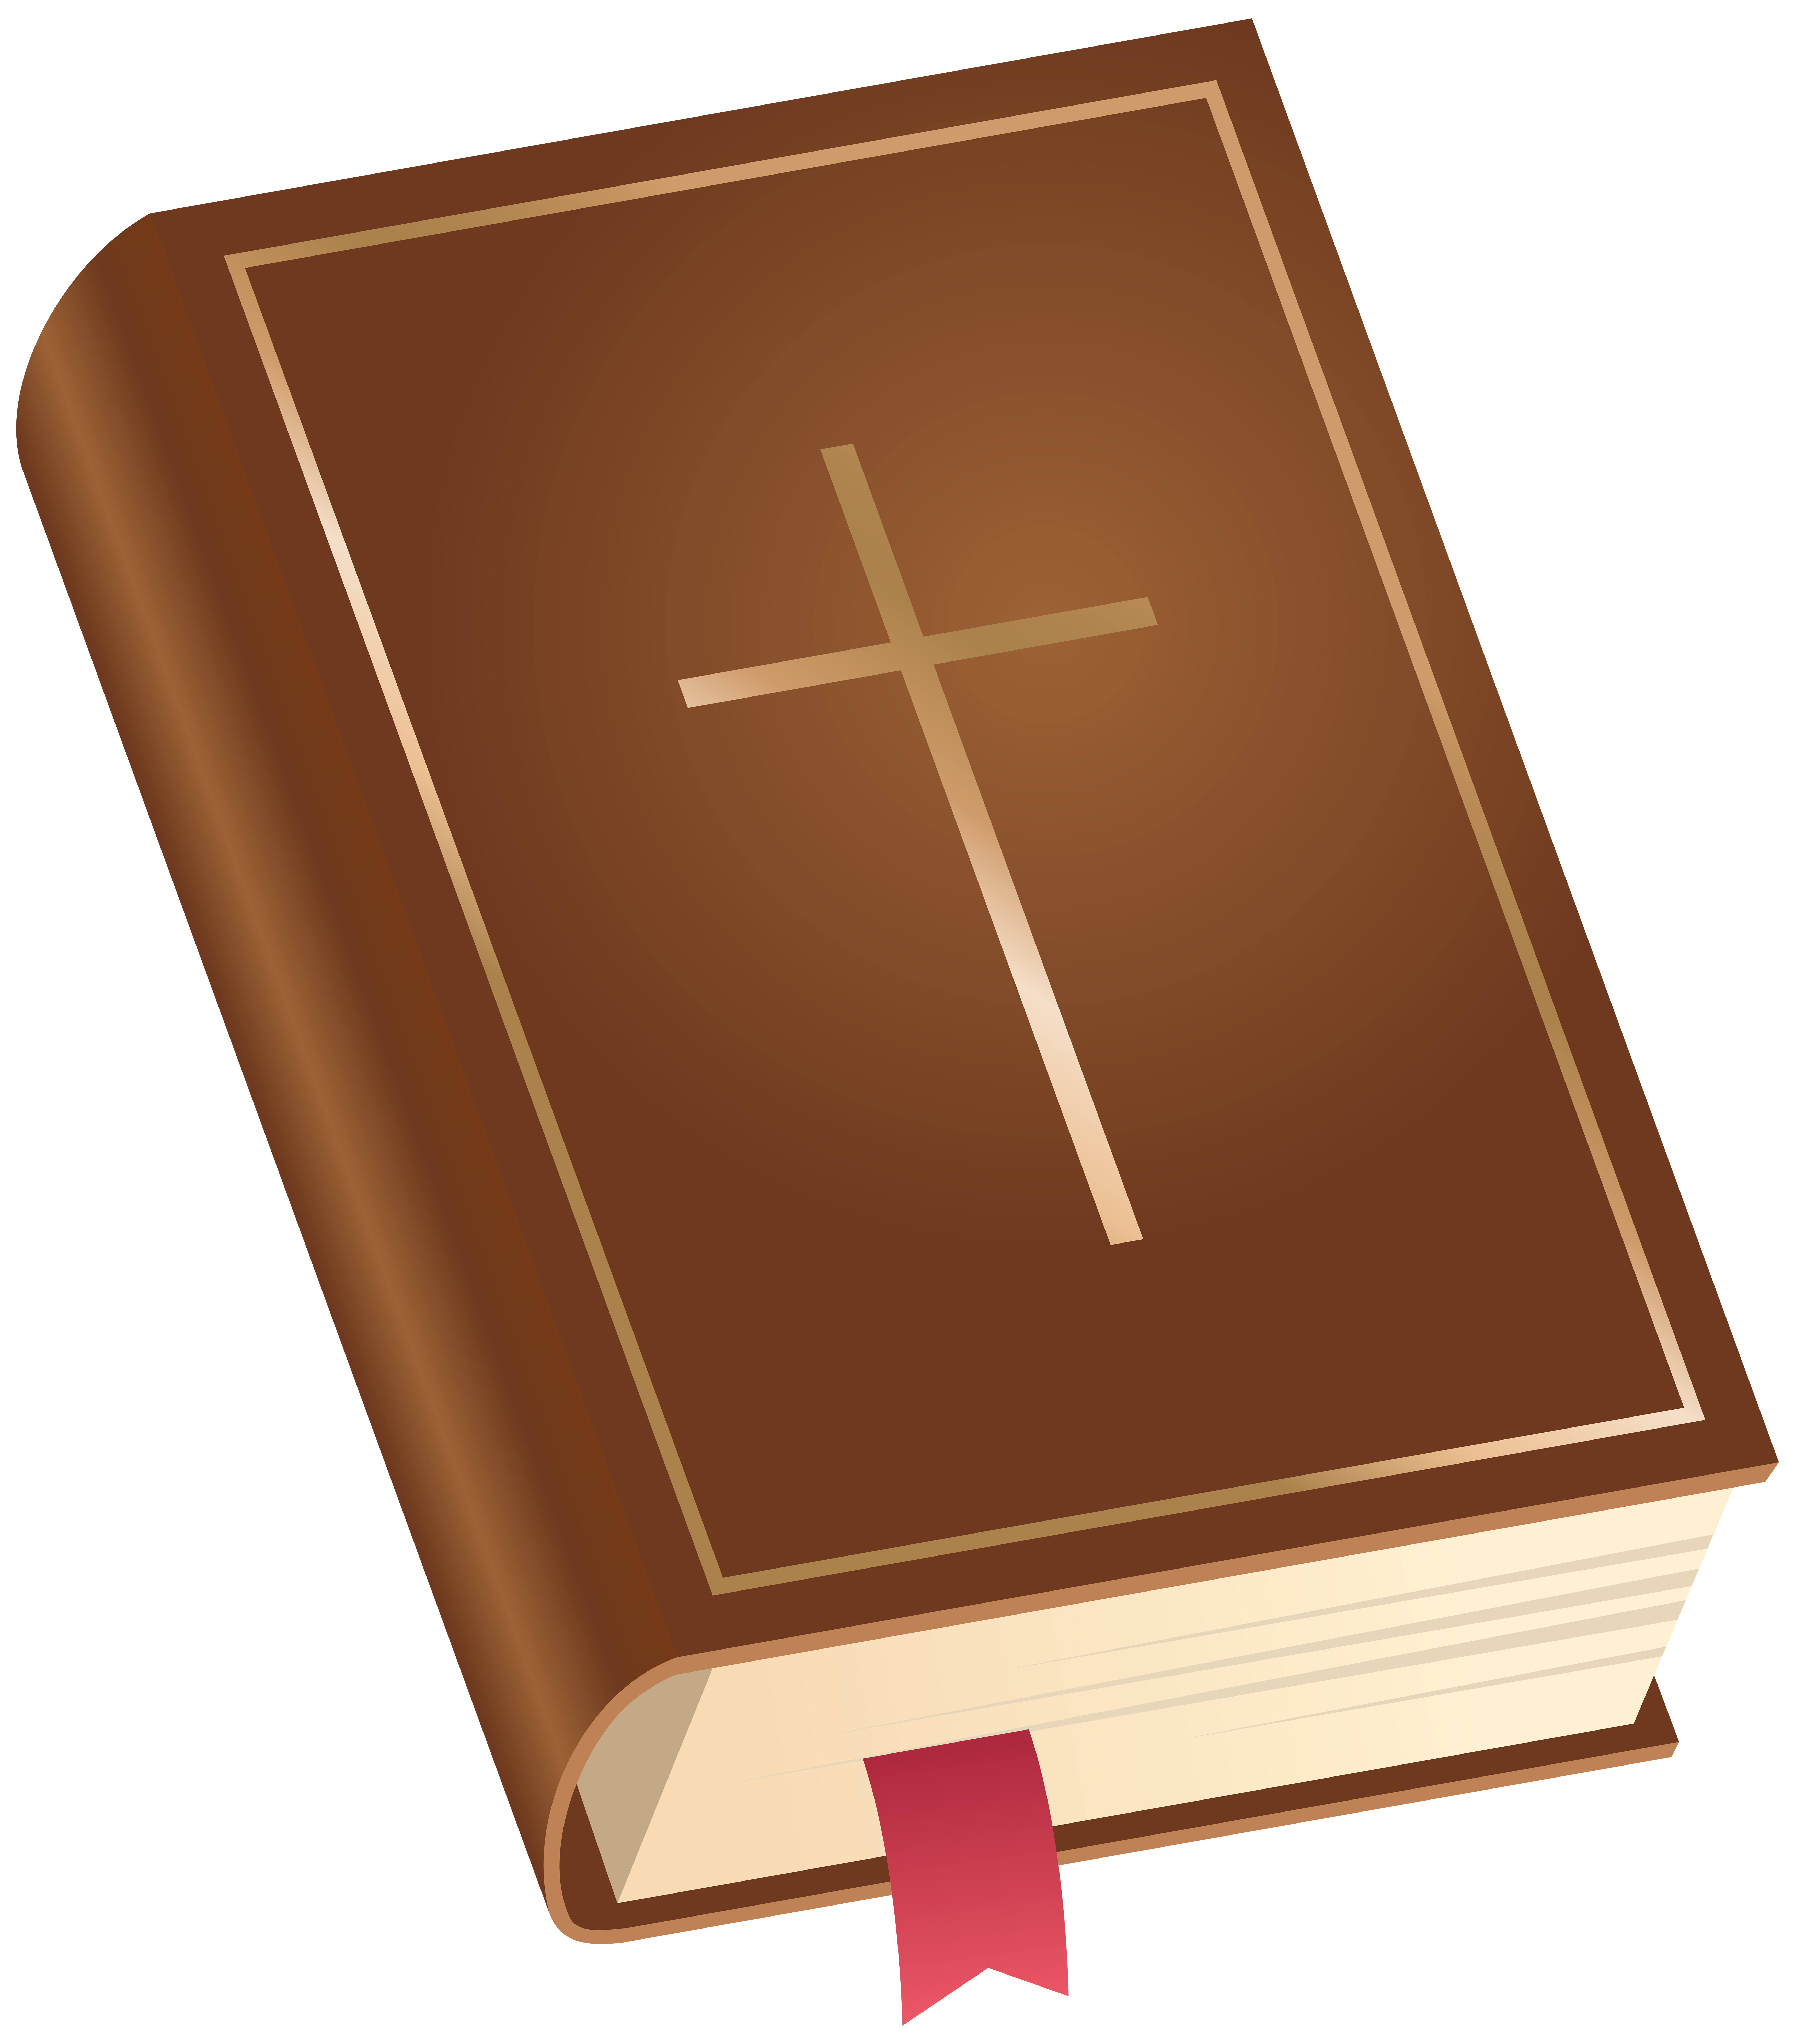 Cross clipart with bible image library download Bible Transparent PNG Clip Art Image | Gallery Yopriceville - High ... image library download